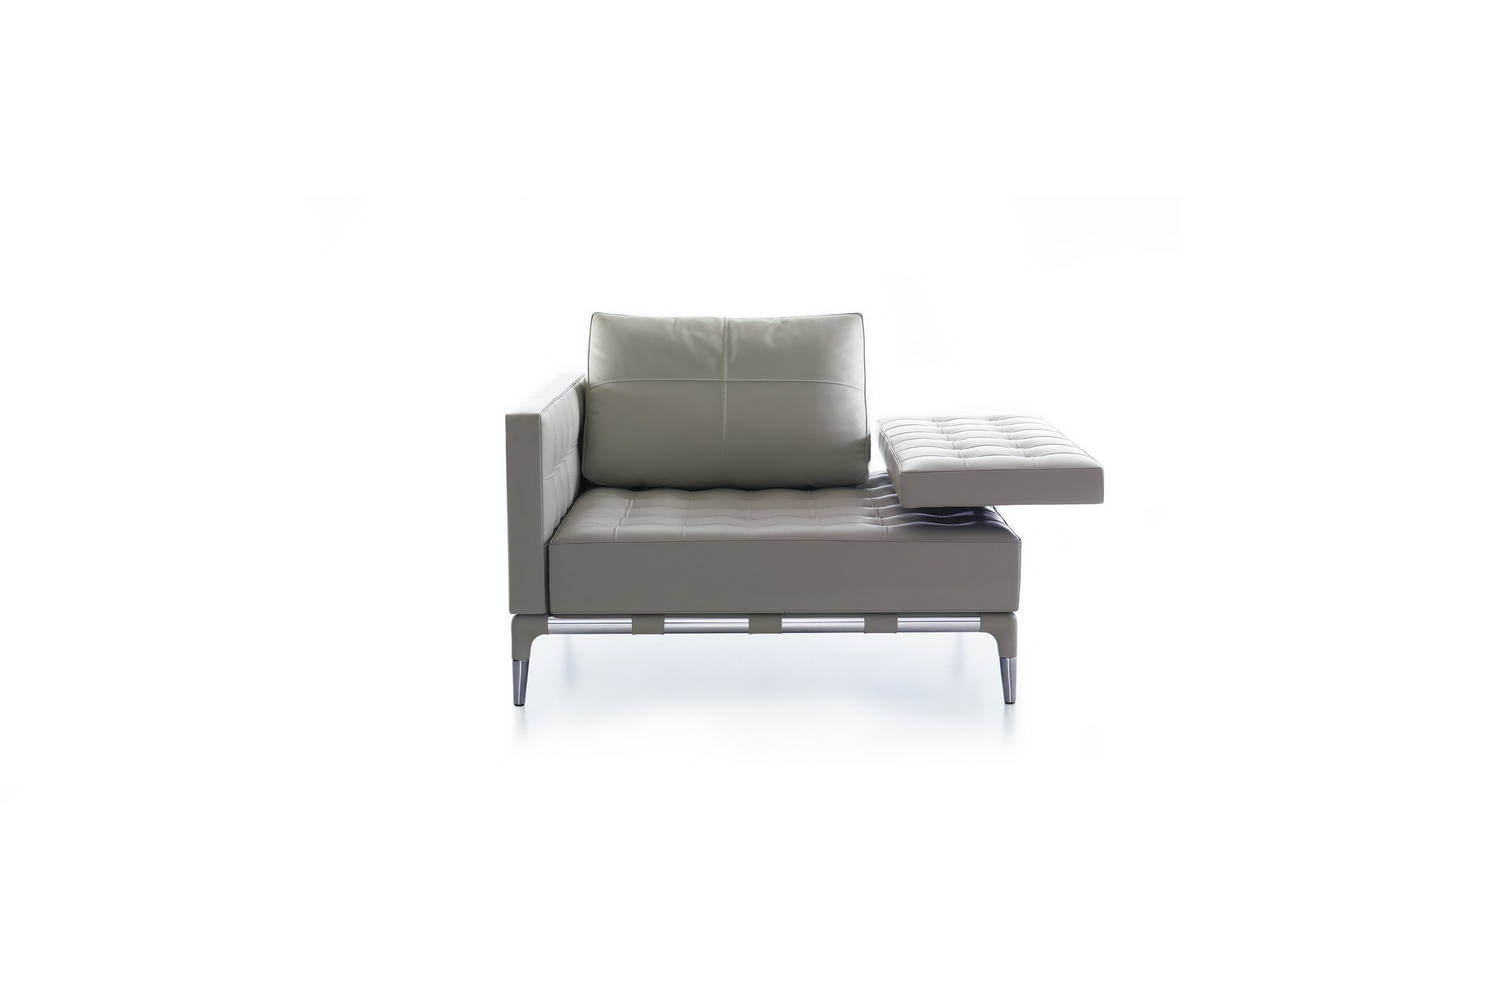 241 Prive Armchair by Philippe Starck for Cassina